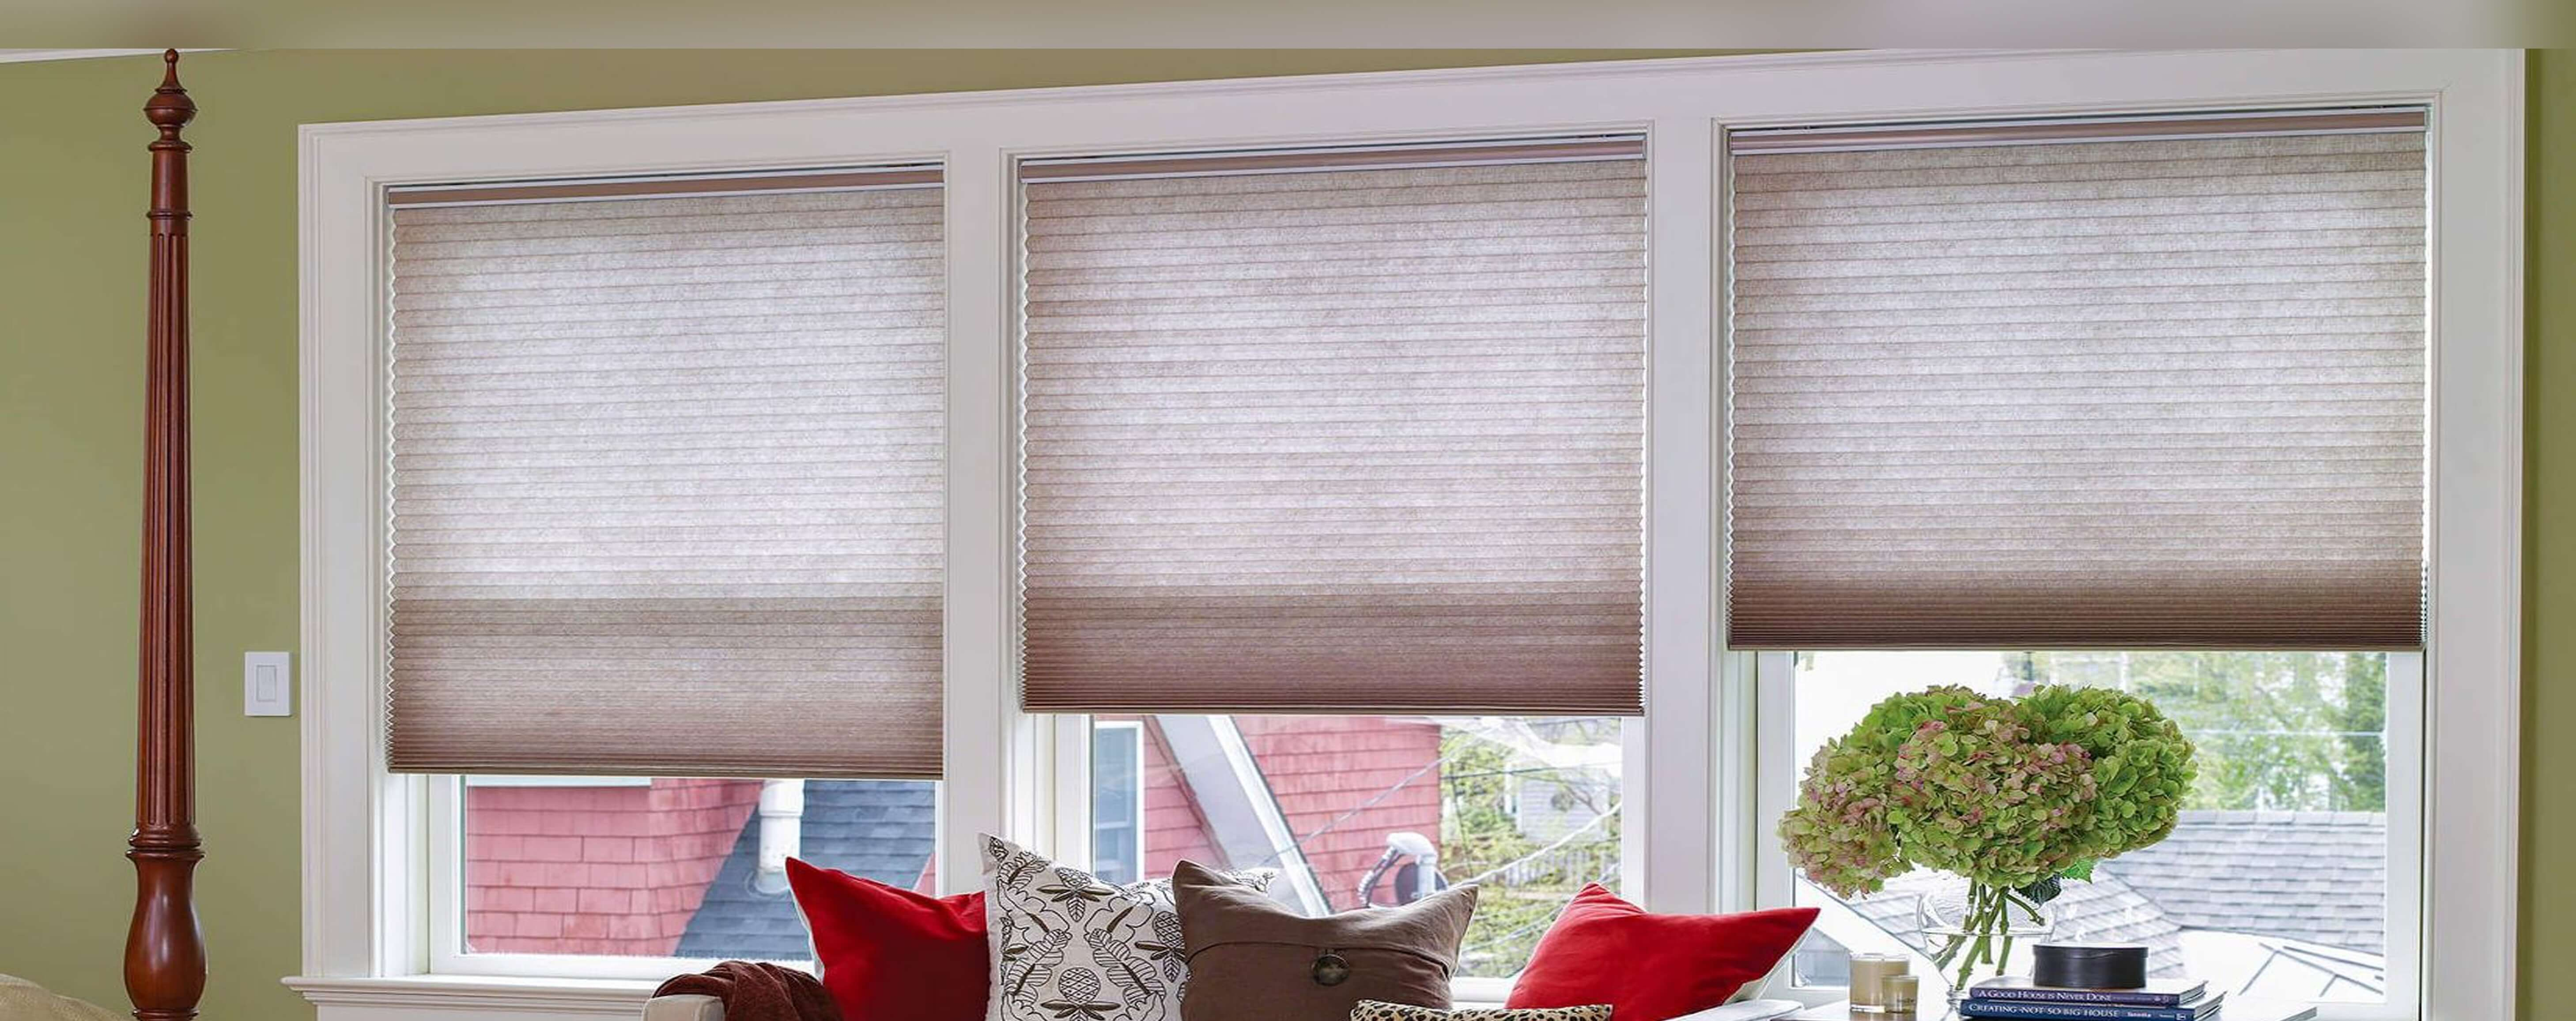 Best Honeycomb Blinds Insulated Window Blinds Euro